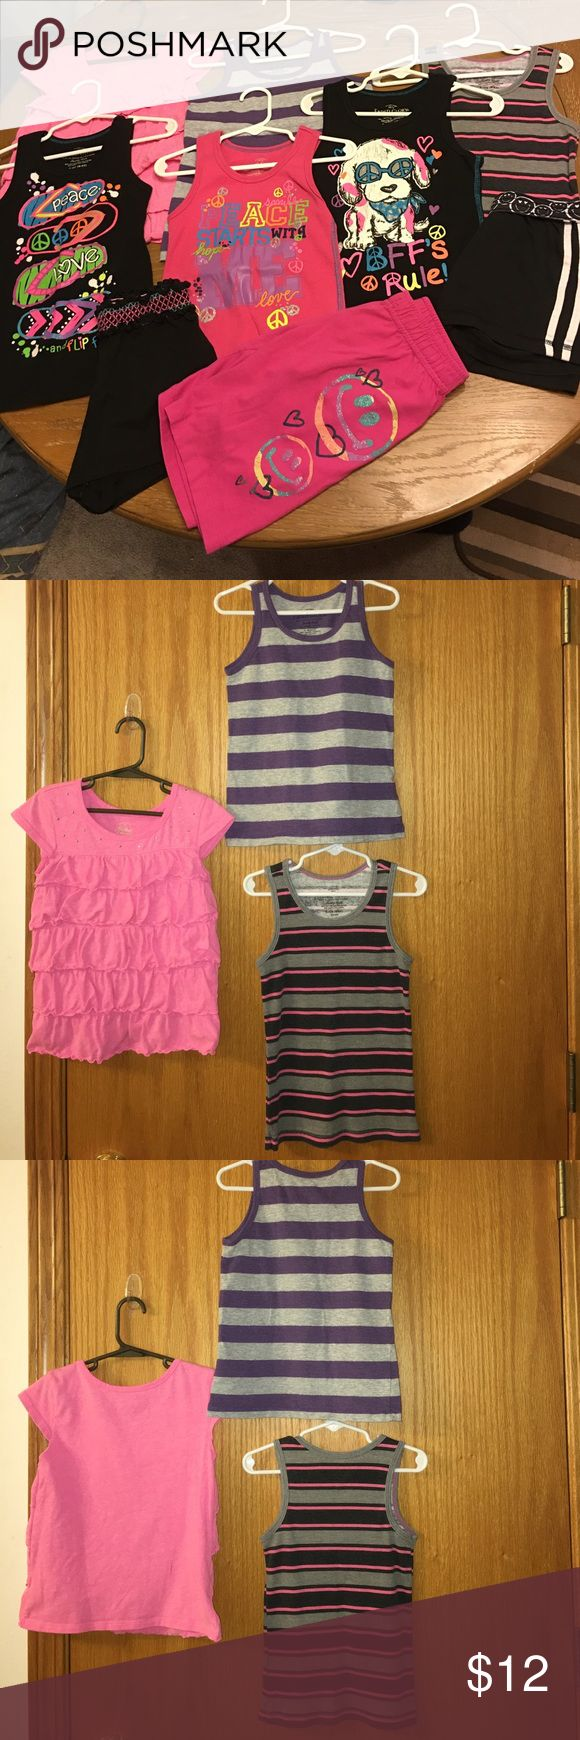 Lot of girls tanktops and shorts size small 6/6x 3 ribbed graphic tanks, 1 ribbed striped tank, 1 striped tank, 1 ruffle layered top with silver studs around neckline (has pen mark on back), black athletic stripe shorts with emoji waistband, long pink graphic shorts, black shorts with embroidery(size6). All 3 shorts have elastic waist. All items are 60% cotton, 40% polyester except the purple tank:80% organic cotton, 18% polyester, 2% metallic. Some piling, all in otherwise great used…